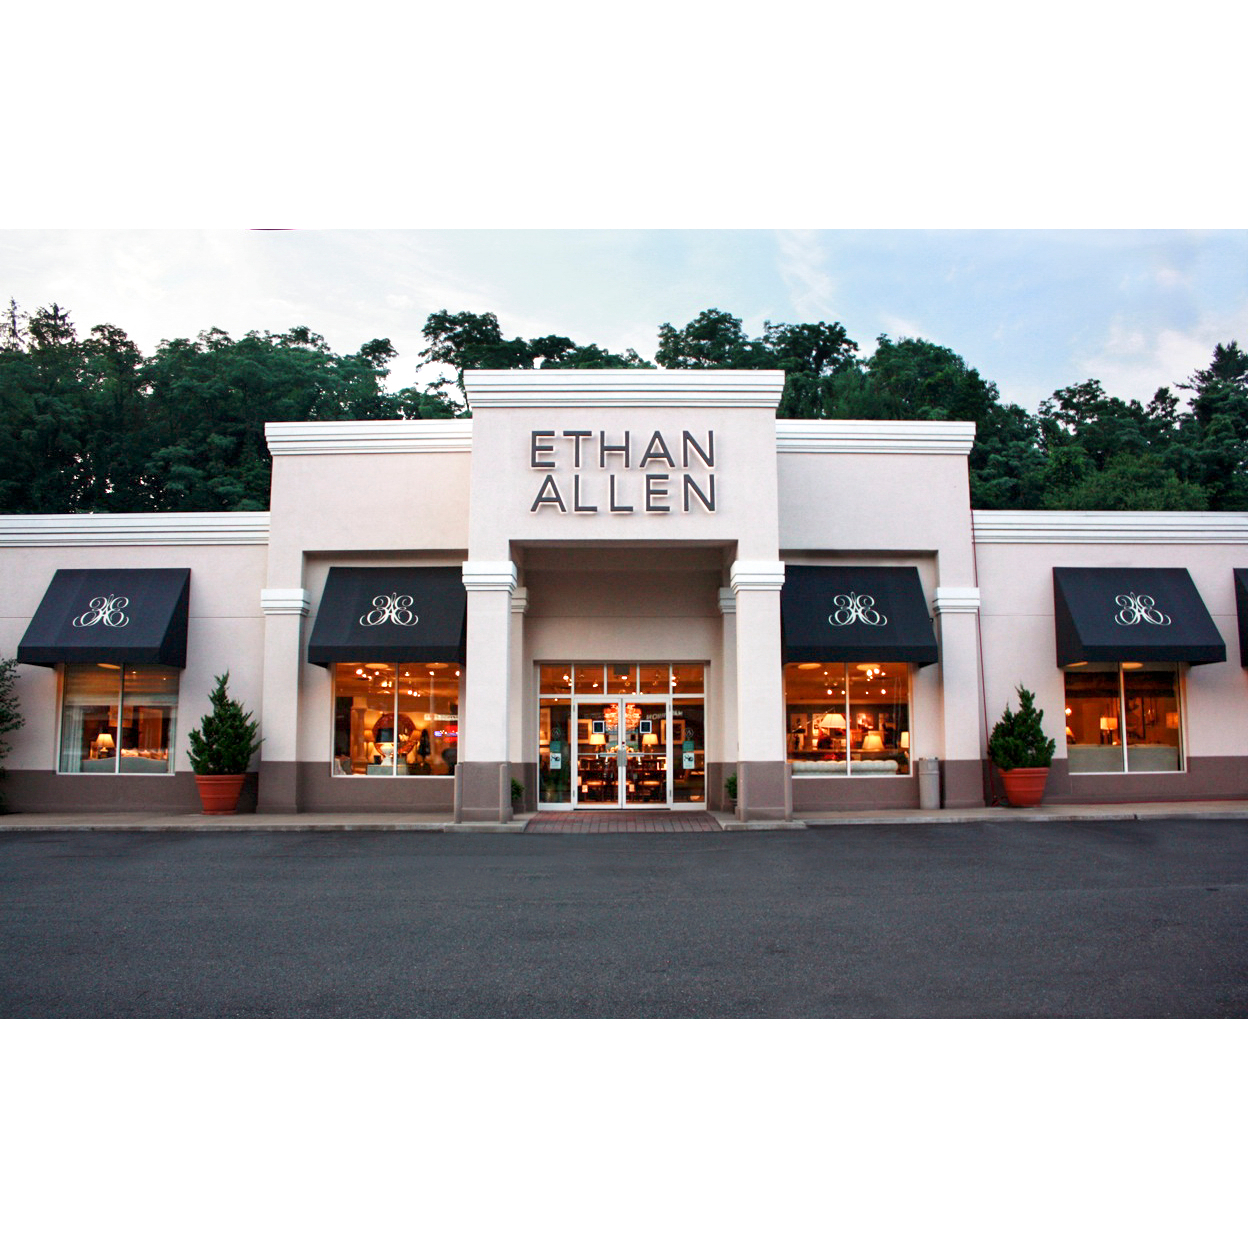 Ethan allen hartsdale new york localdatabasecom for Furniture reupholstery yonkers